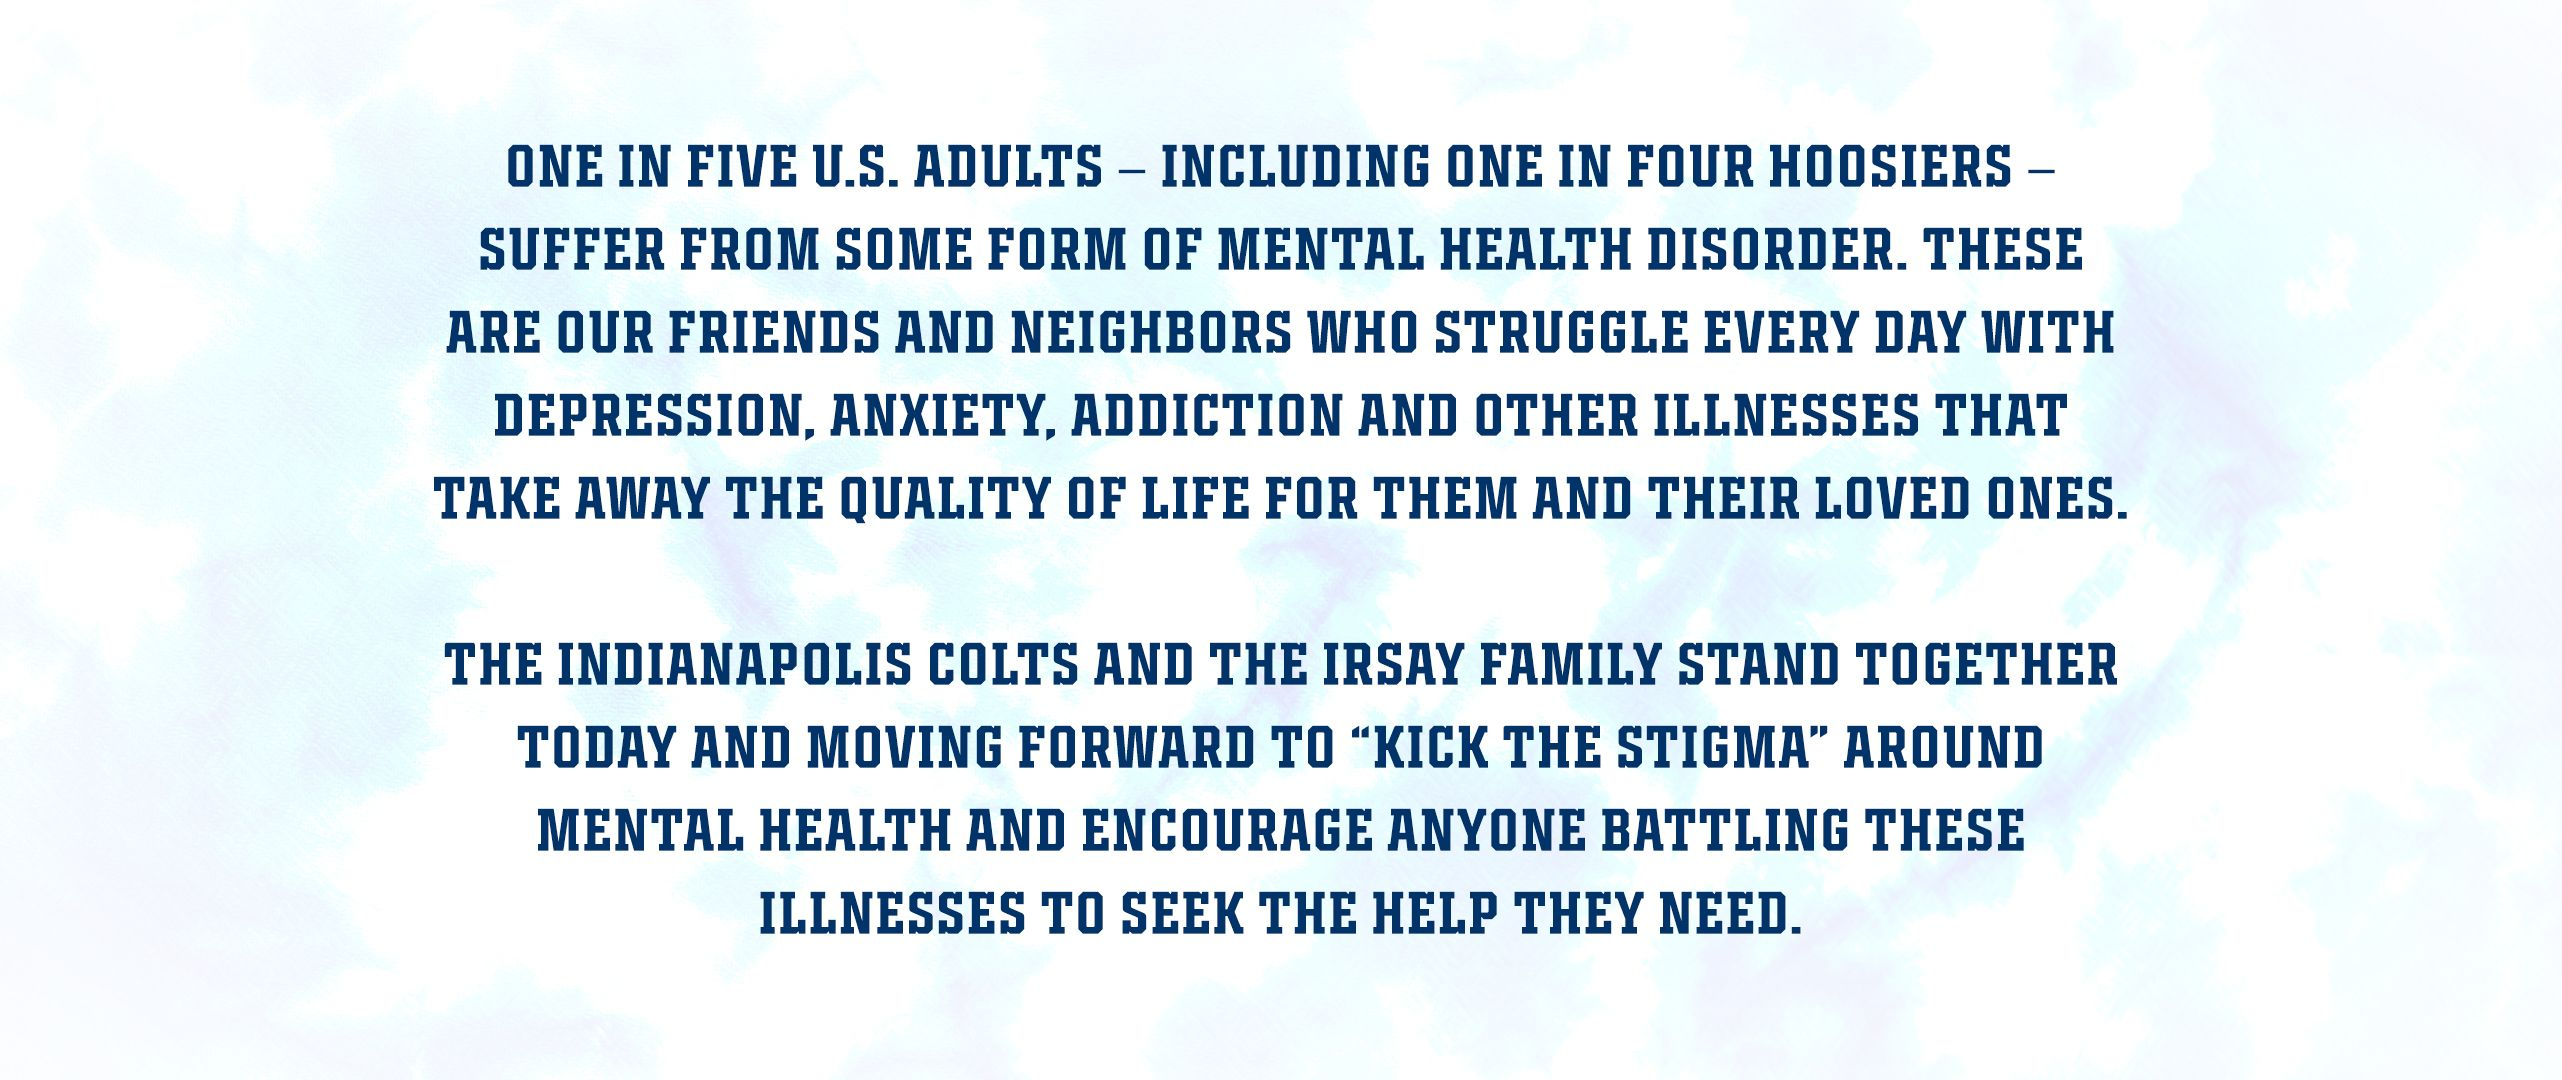 """One in five U.S. adults – including one in four Hoosiers – suffer from some form of mental health disorder.These are our friends and neighbors who struggle every day with depression, anxiety, addiction and other illnesses that take away the quality of life for them and their loved ones.  The Indianapolis Colts and the Irsay Family stand together today and moving forward to """"Kick The Stigma"""" around mental health and encourage anyone battling these illnesses to seek the help they need."""